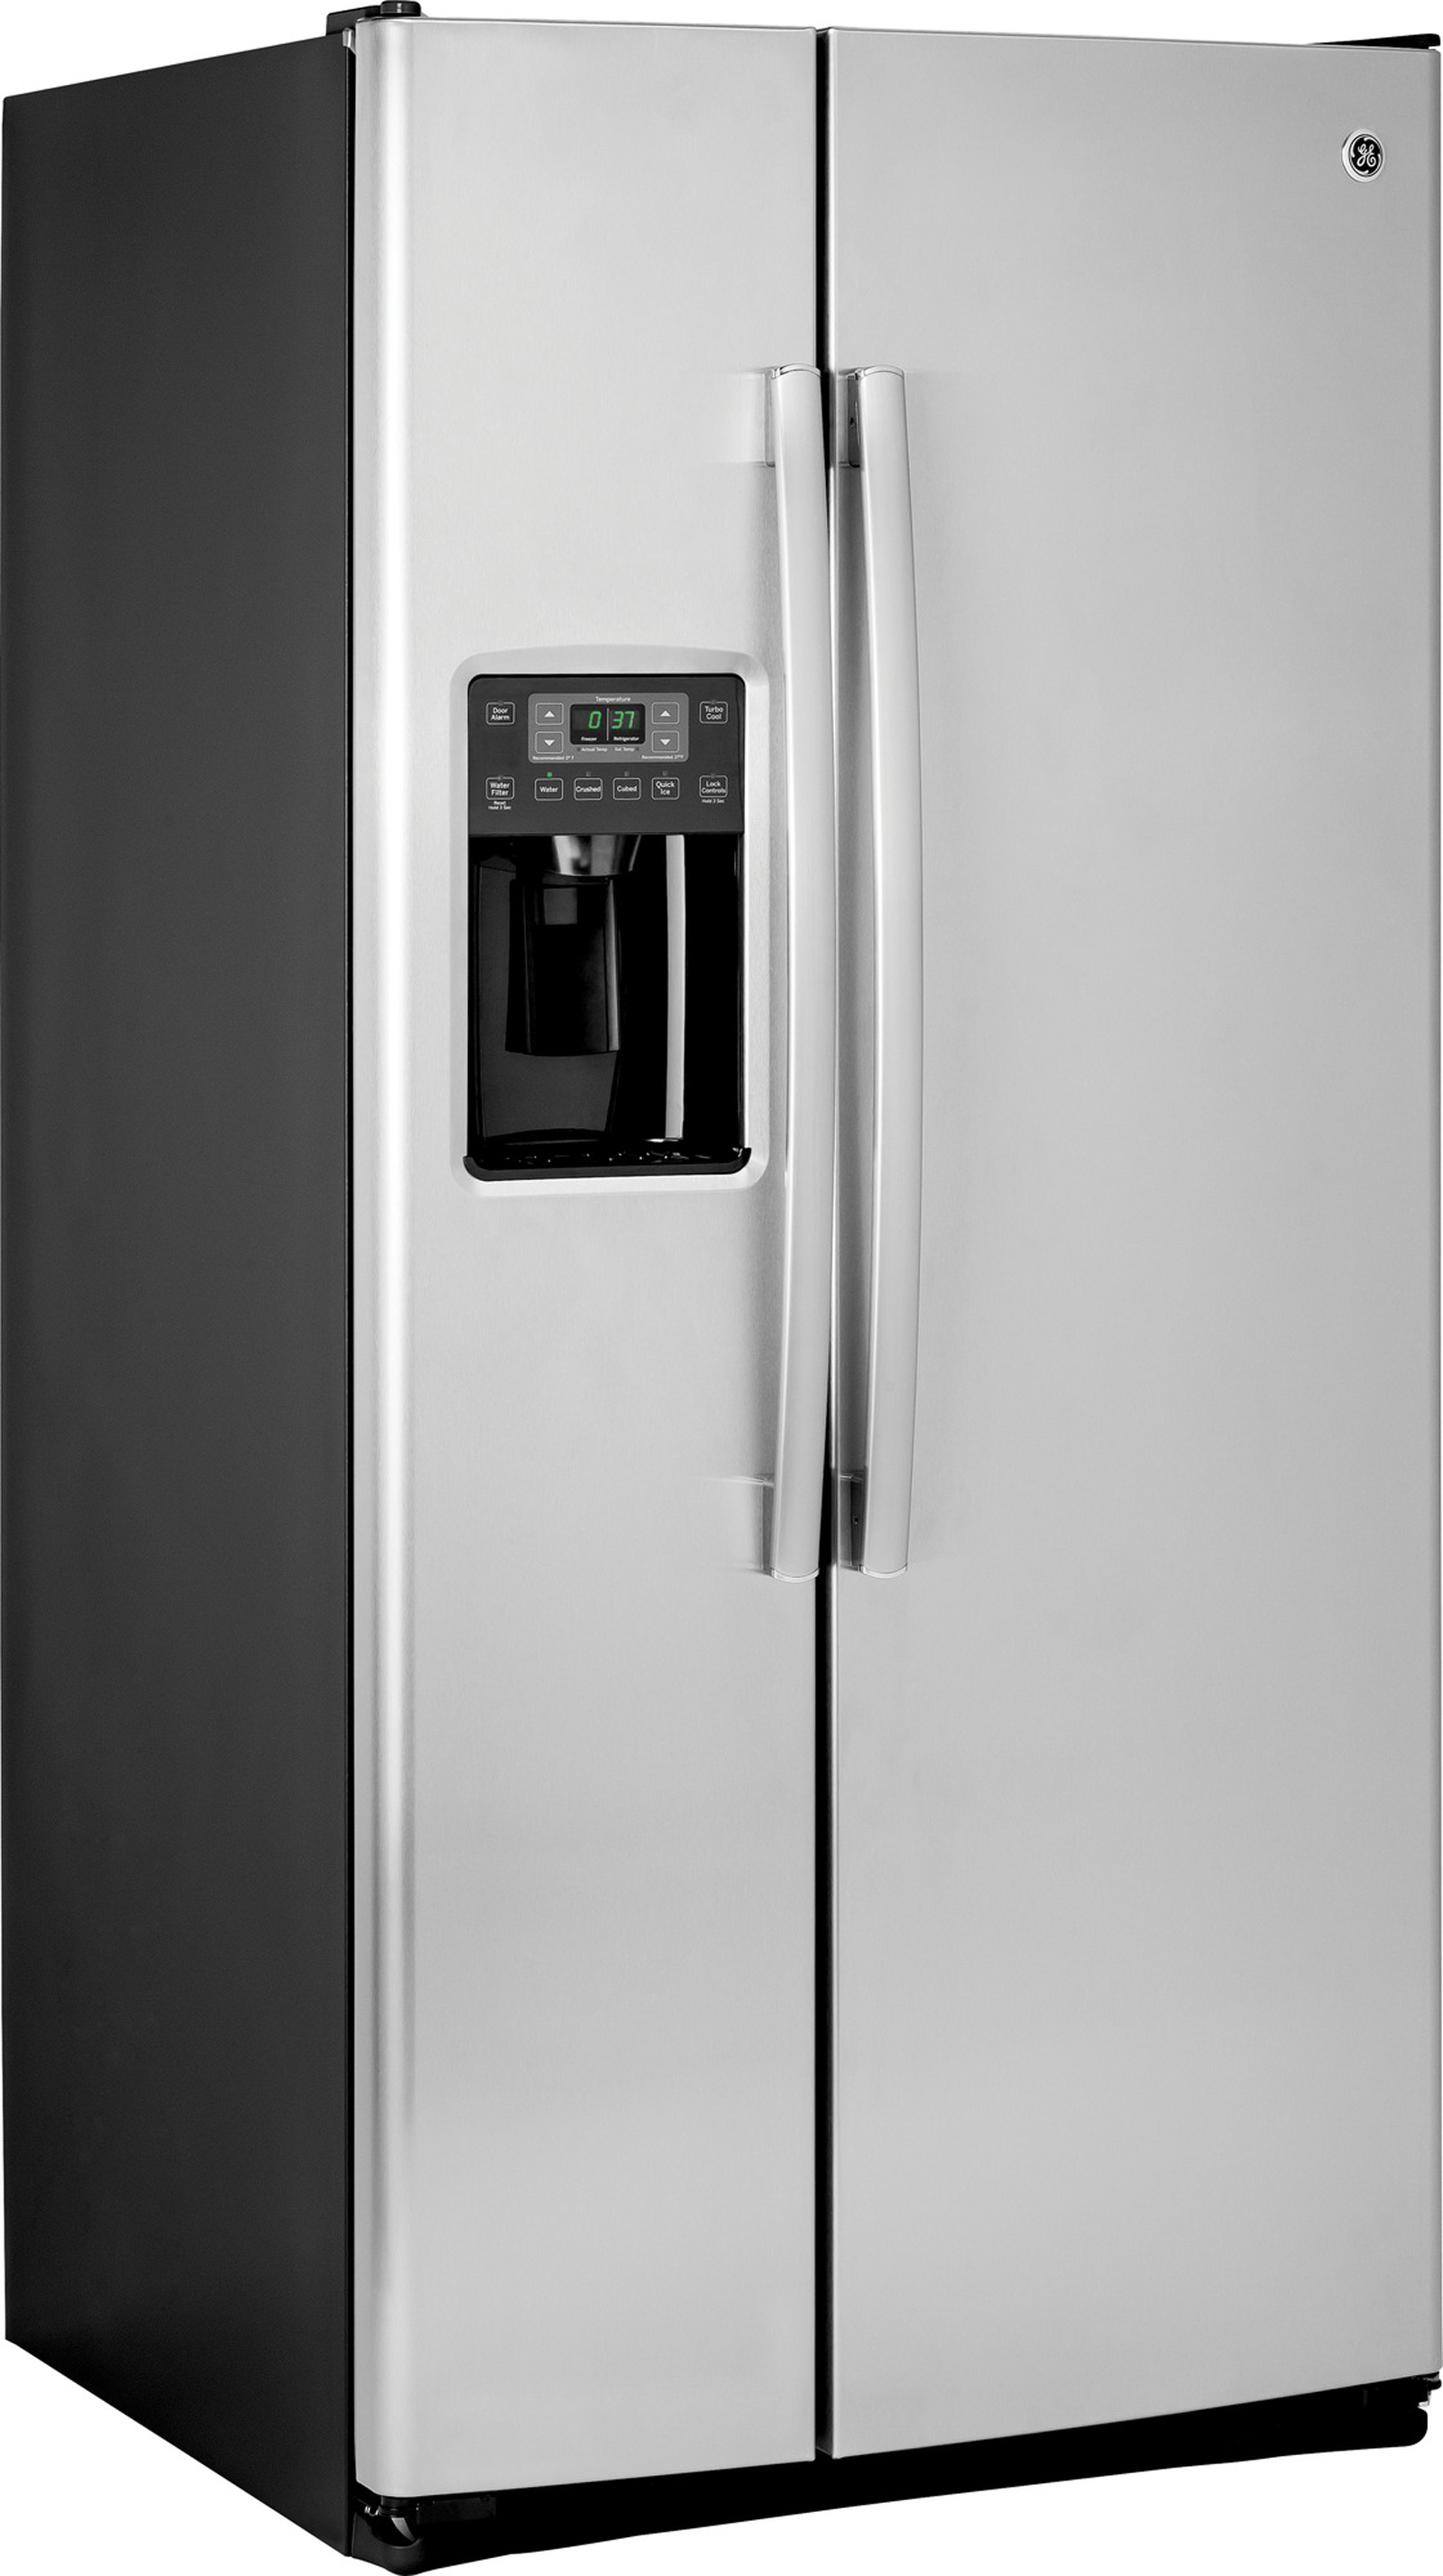 GE Appliances GSS23HSHSS 22.5 cu. ft. Side-By-Side Refrigerator - Stainless Steel